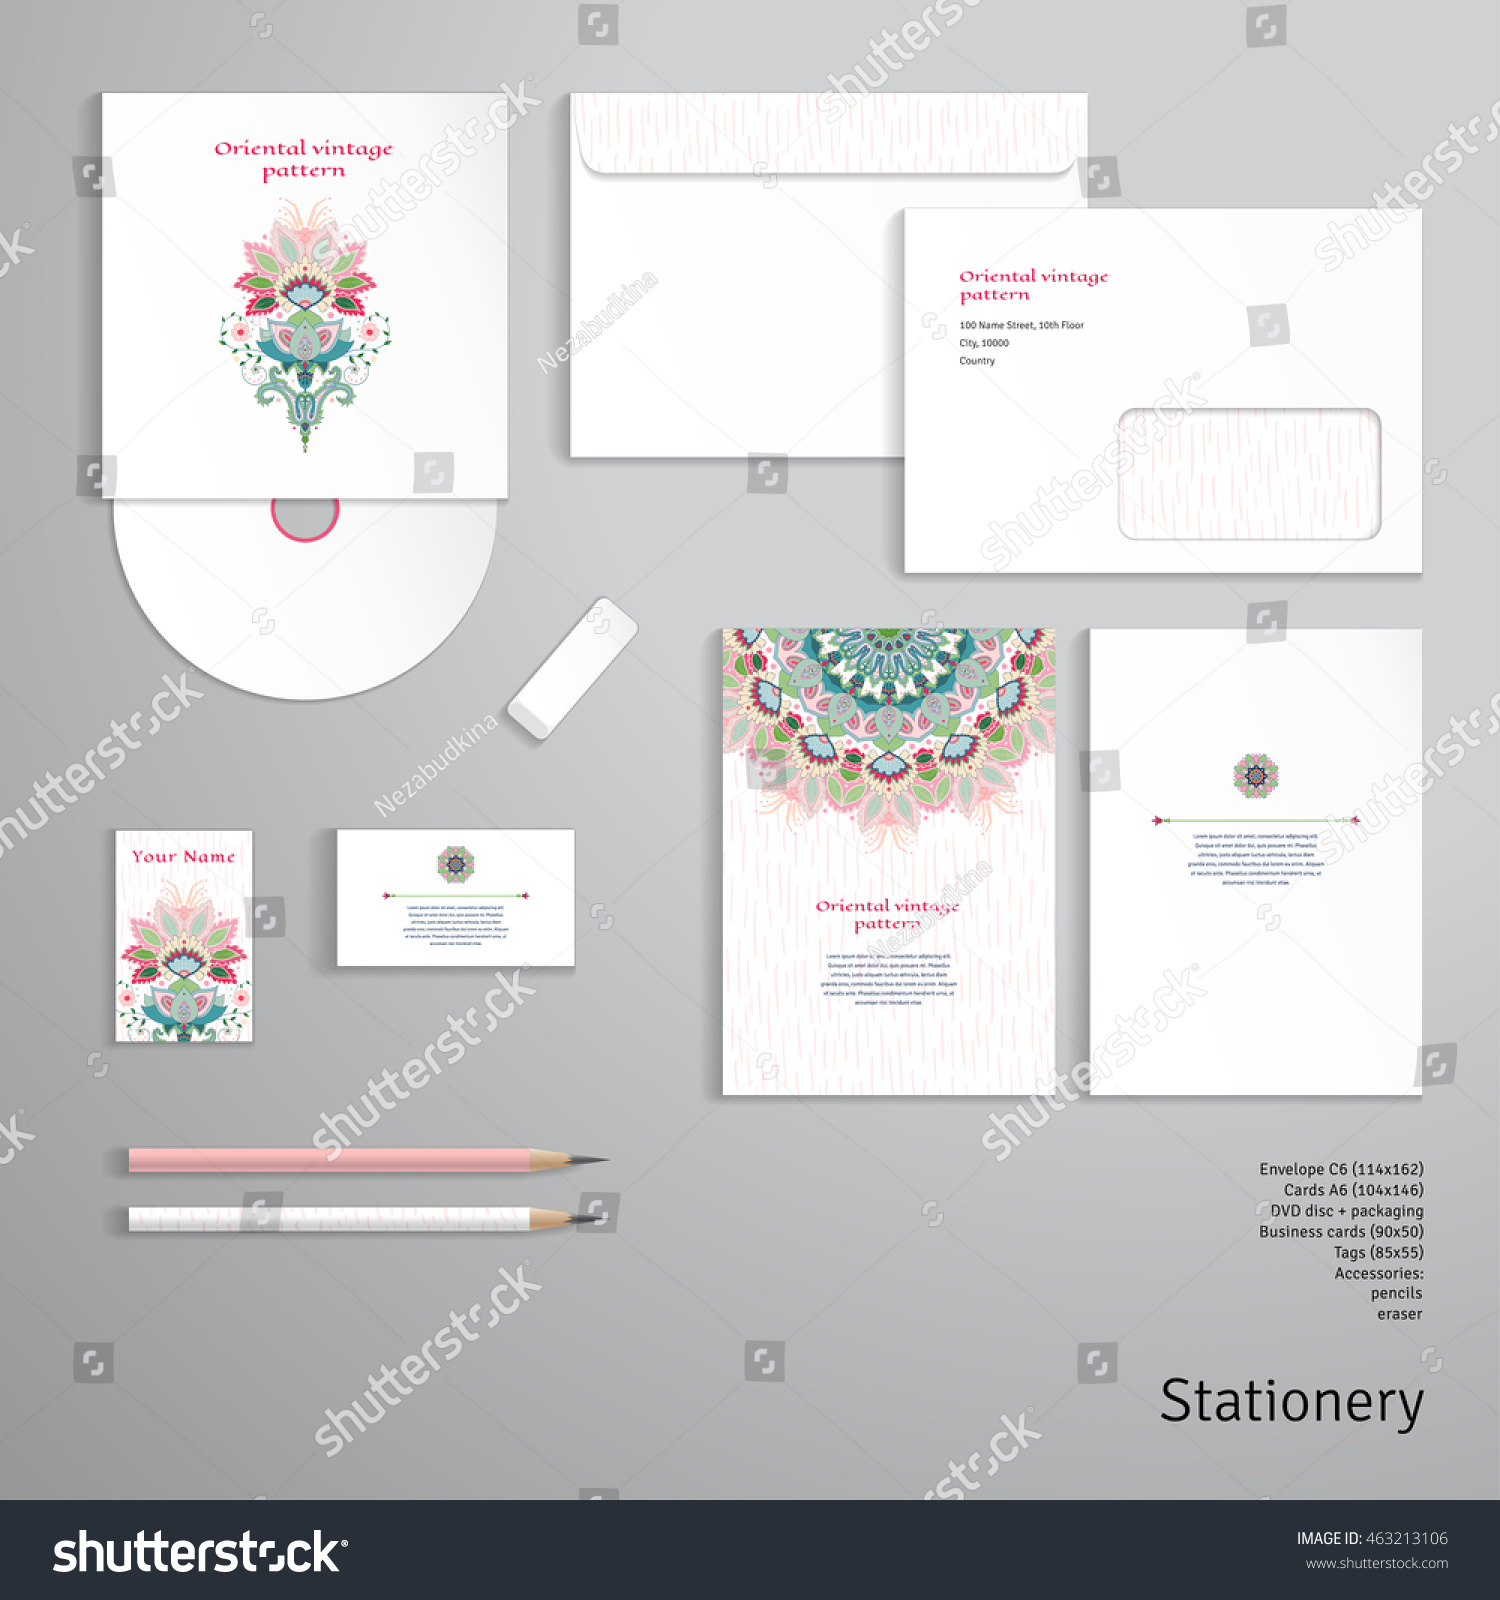 Vector Identity Templates Envelope Business Card Stock Vector HD ...